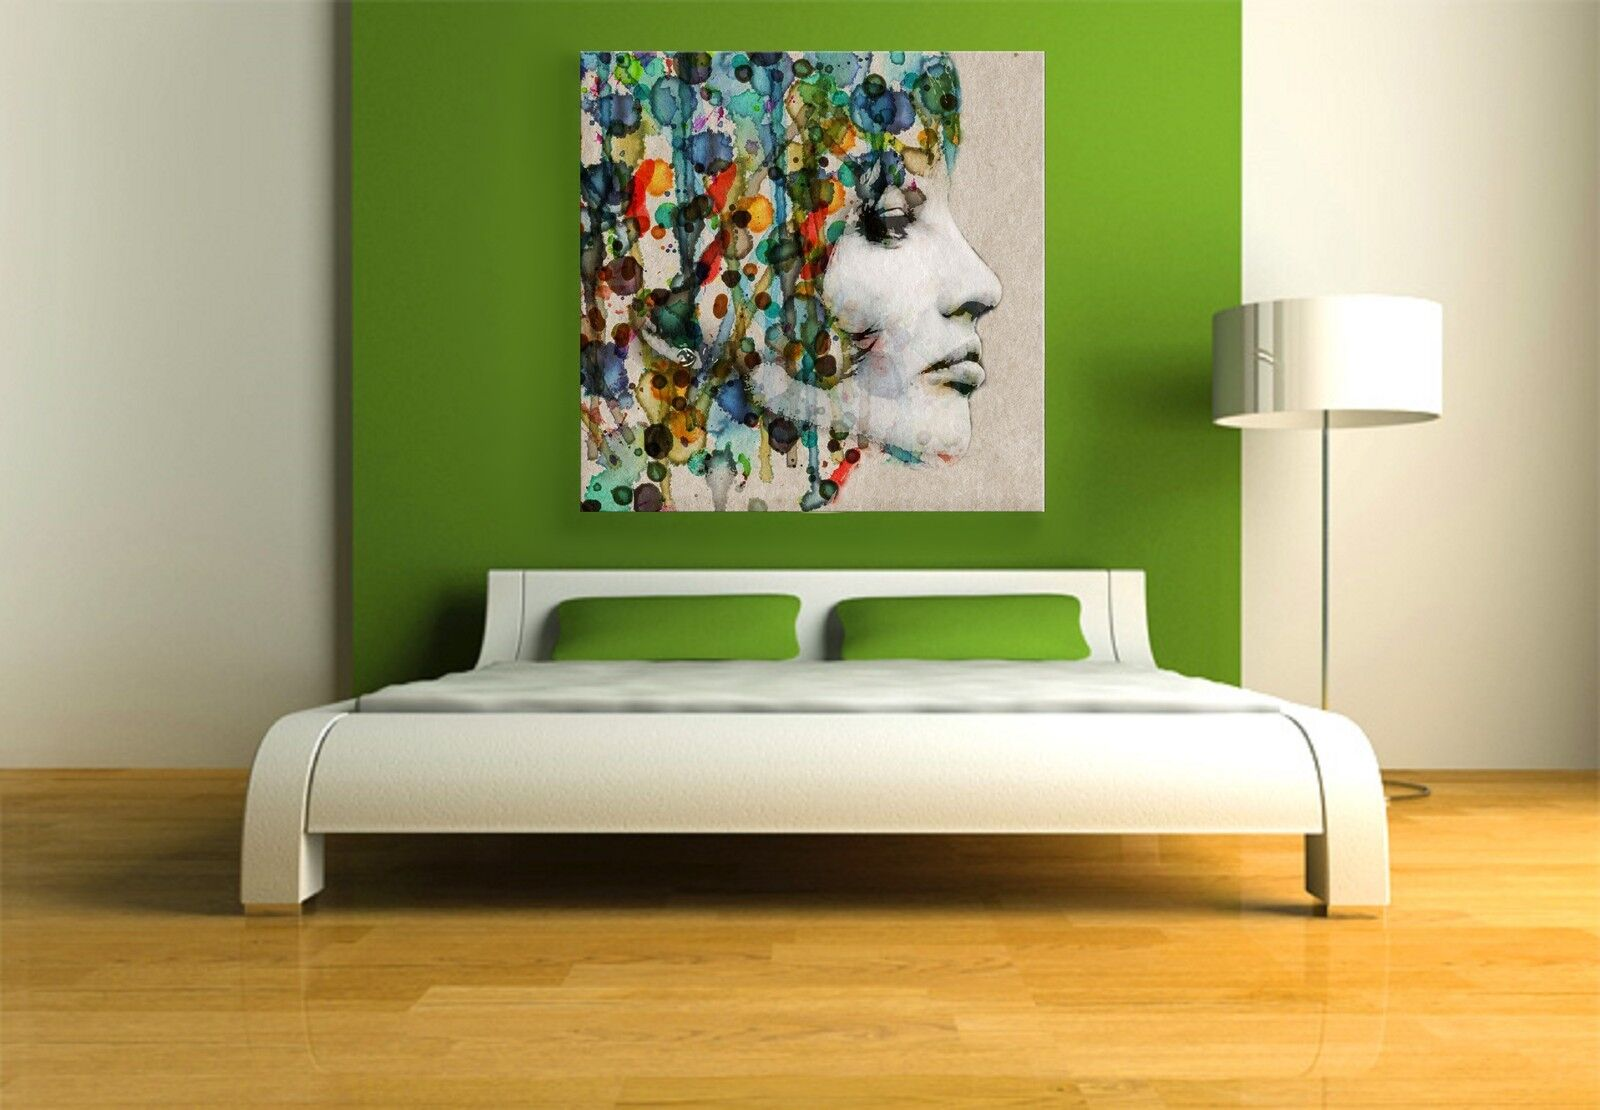 xxl bild 95x95x5 gem lde frau abstrakt natur leinwand canvas ikea modern art eur 74 99. Black Bedroom Furniture Sets. Home Design Ideas